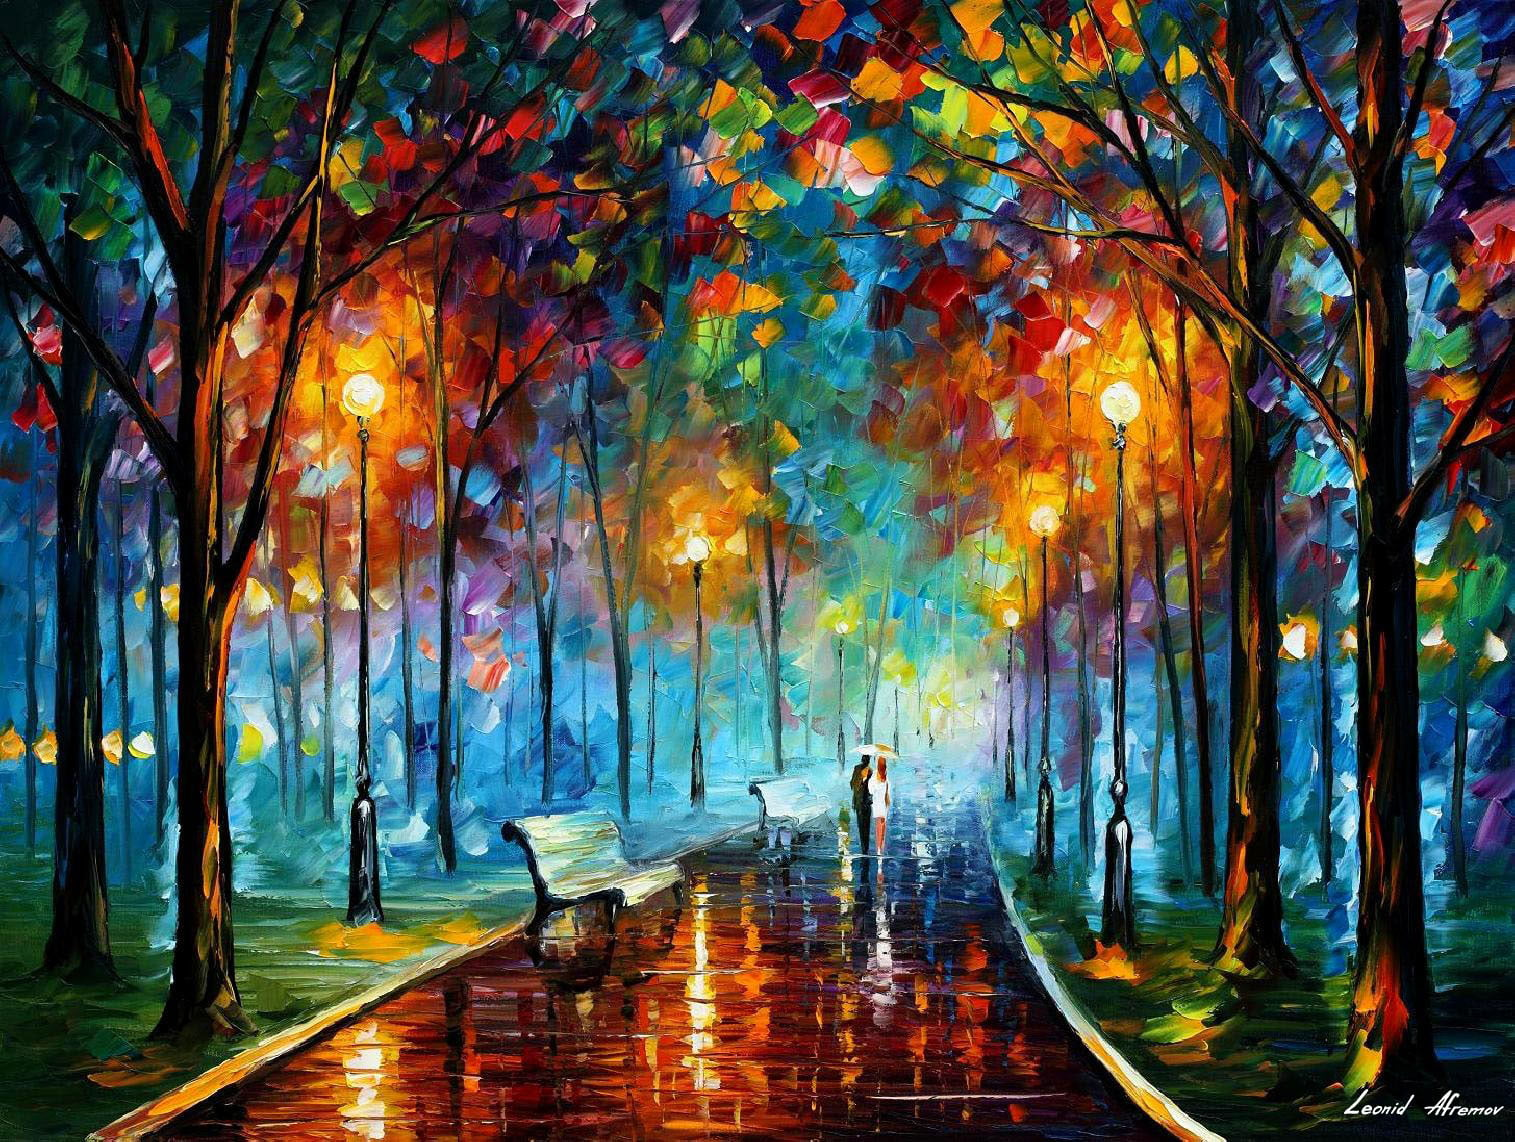 Leonid Afremov, oil on canvas, palette knife, buy original paintings, art, famous artist, biography, official page, online gallery, large artwork, ballet, ballerina, music, dance